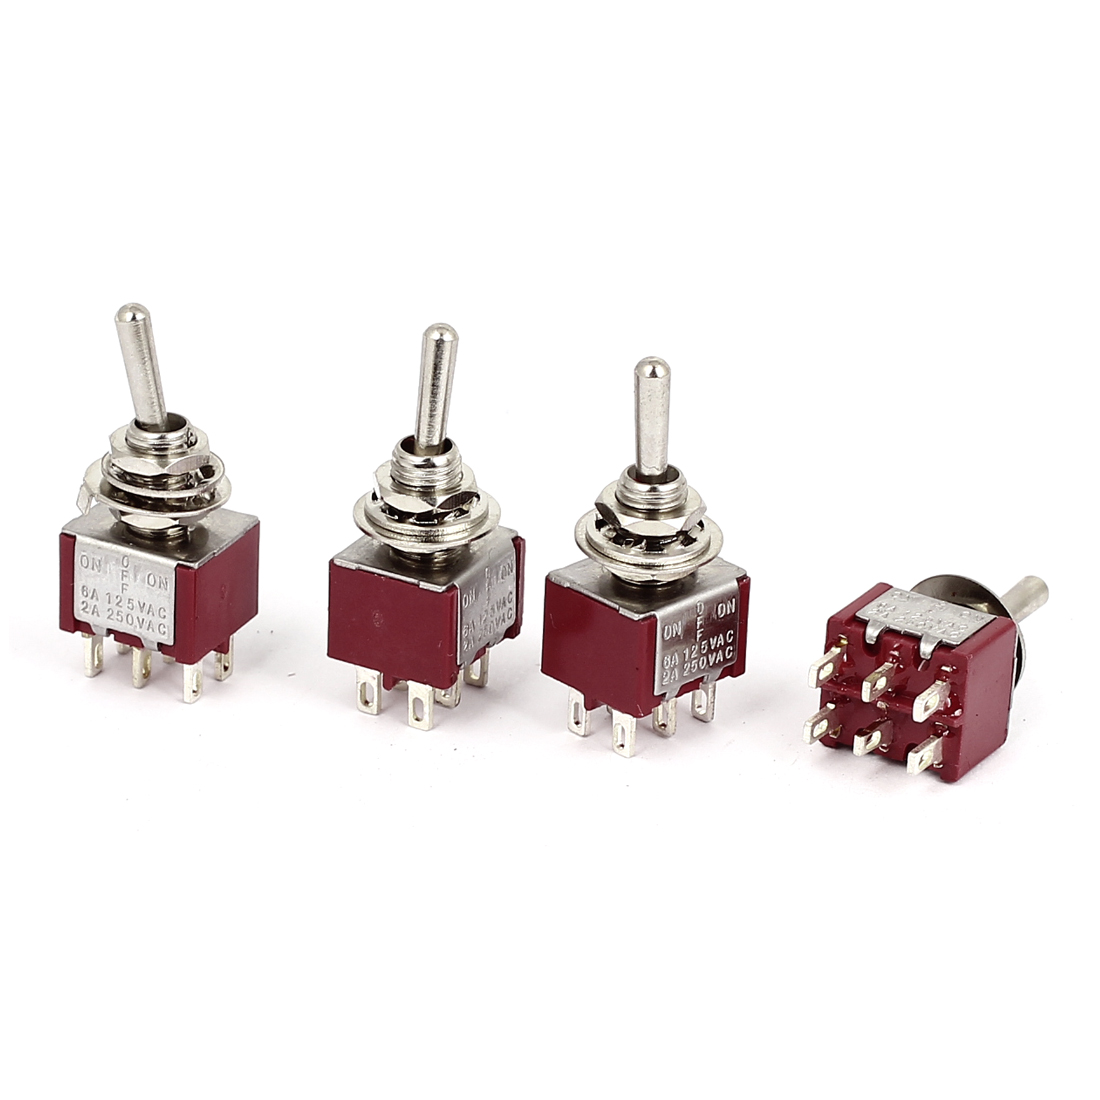 AC125V/250V 6A/2A Mini 6 Pins DPDT ON-OFF-ON Latching Toggle Switches 4 Pcs